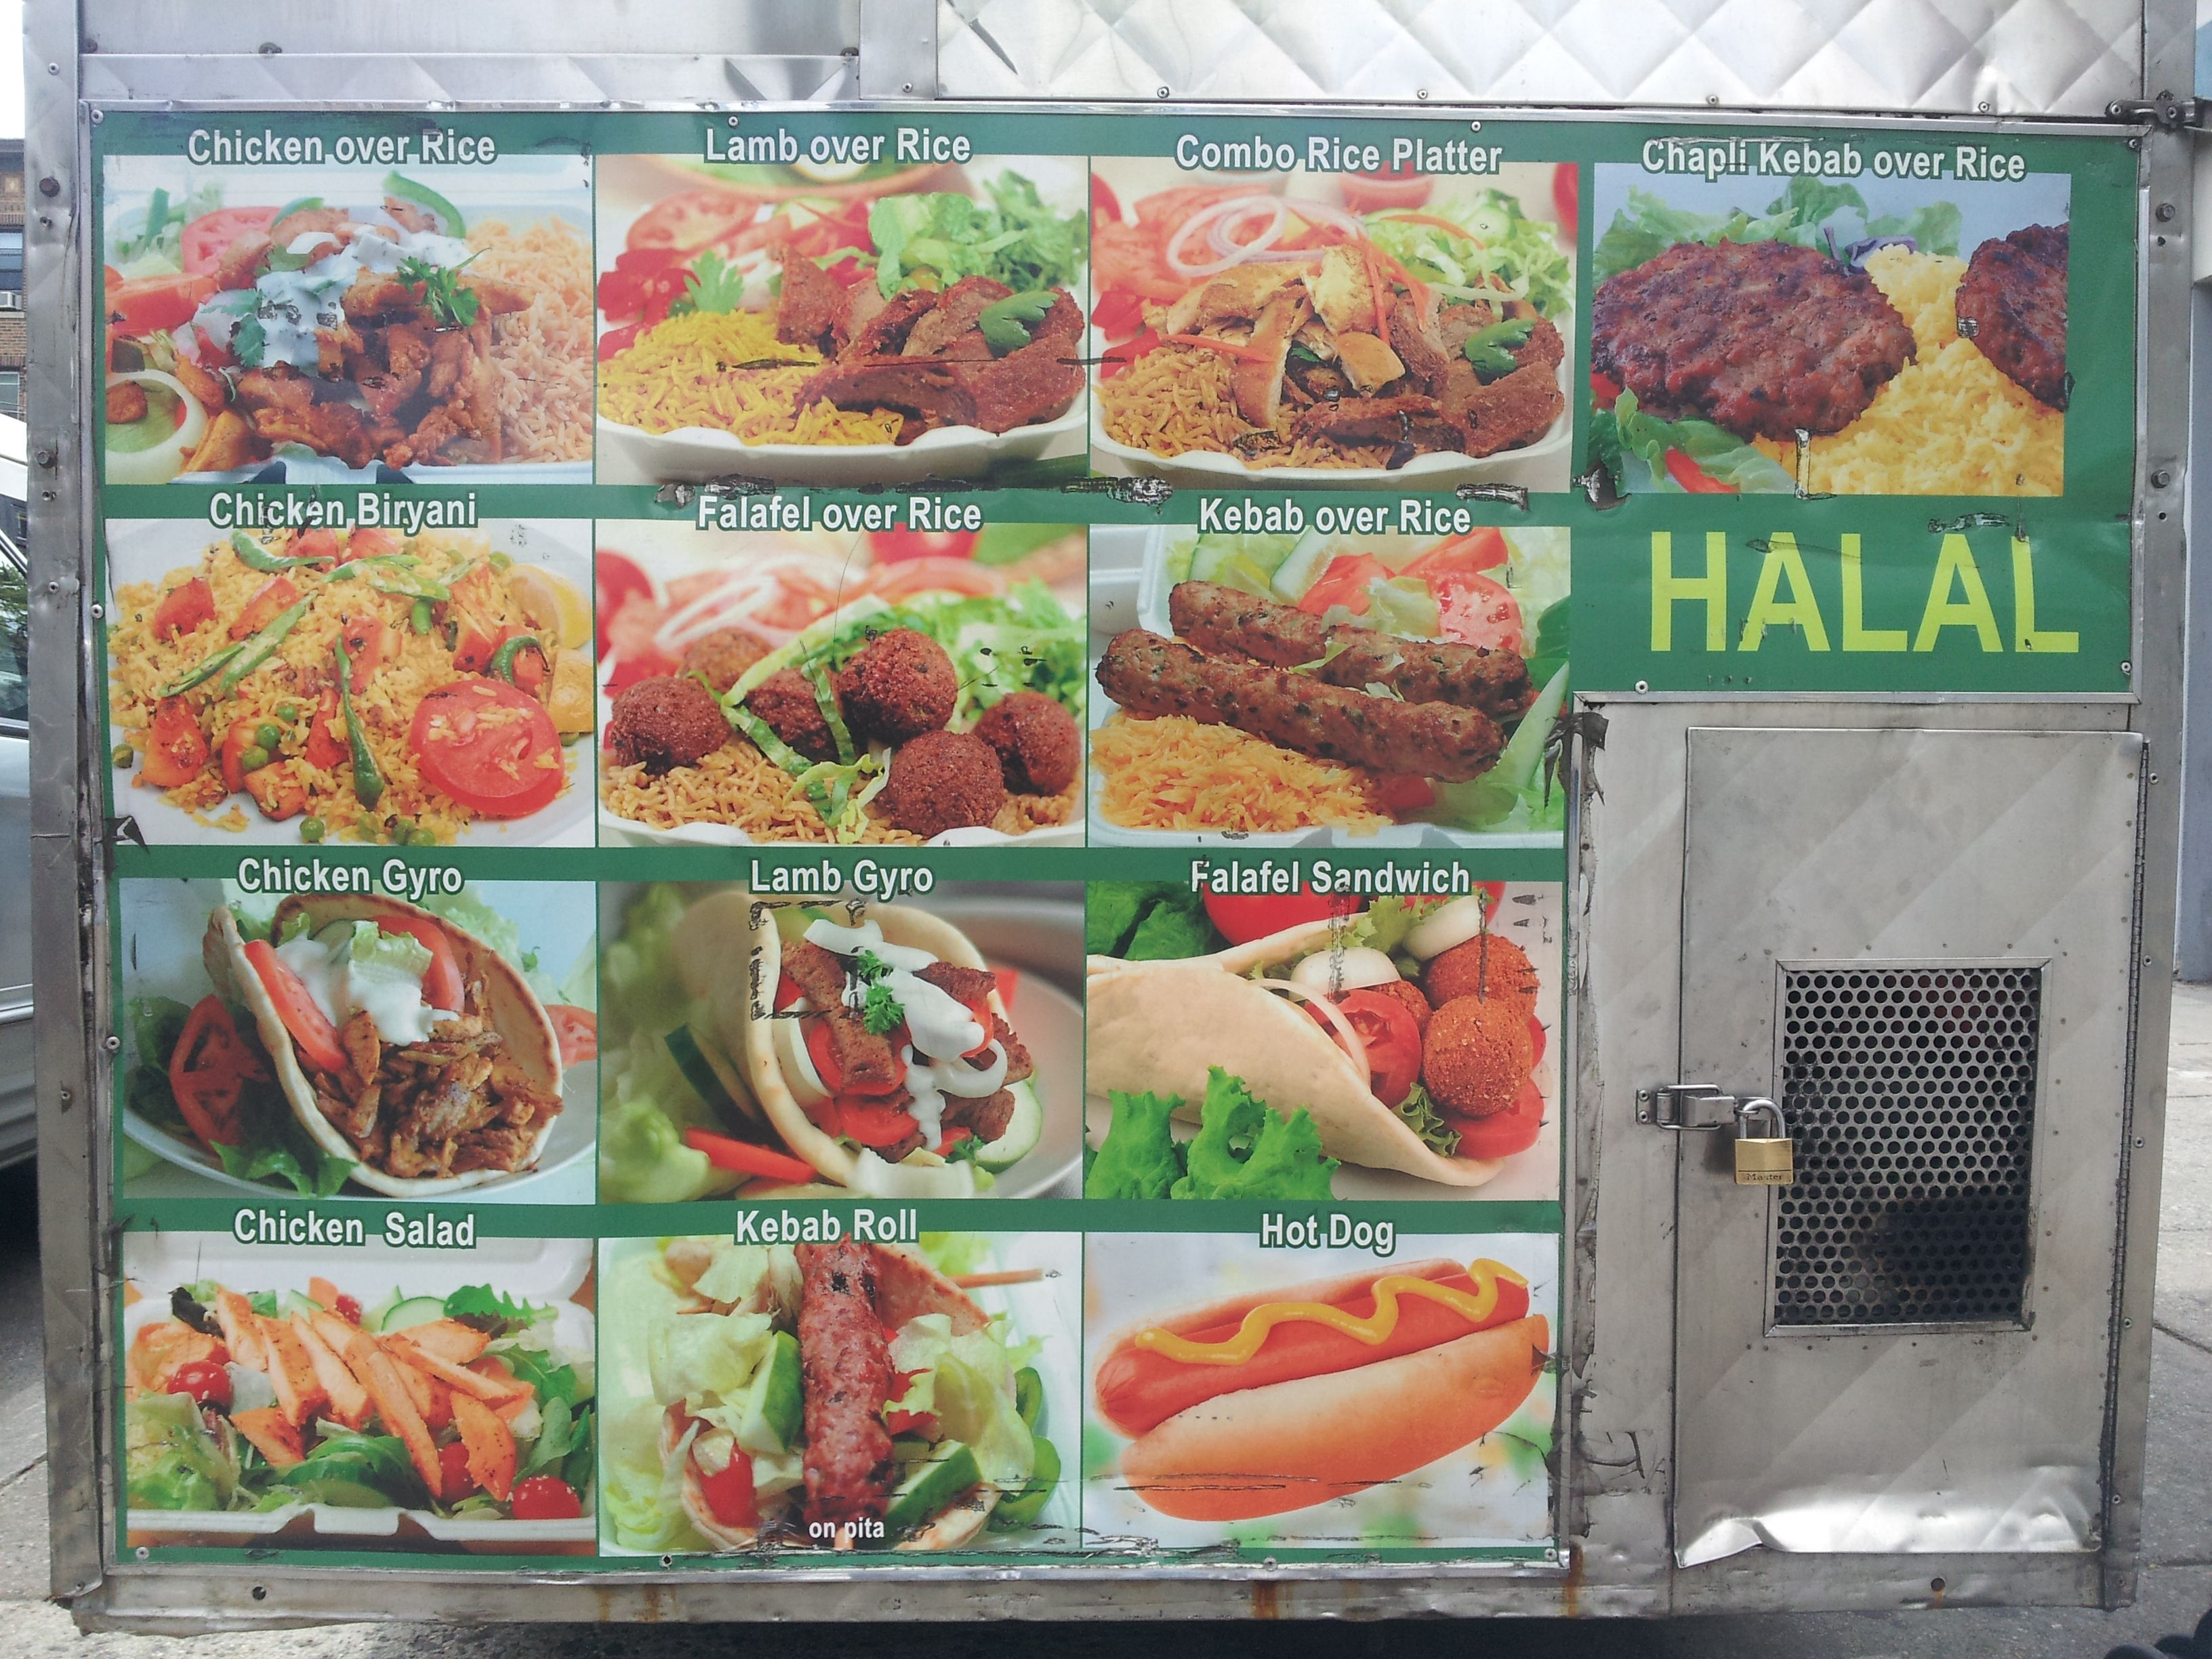 Bahktar Halal Cart Menu Photos Jpg 3264 2448 Lamb Gyros Halal Halal Recipes